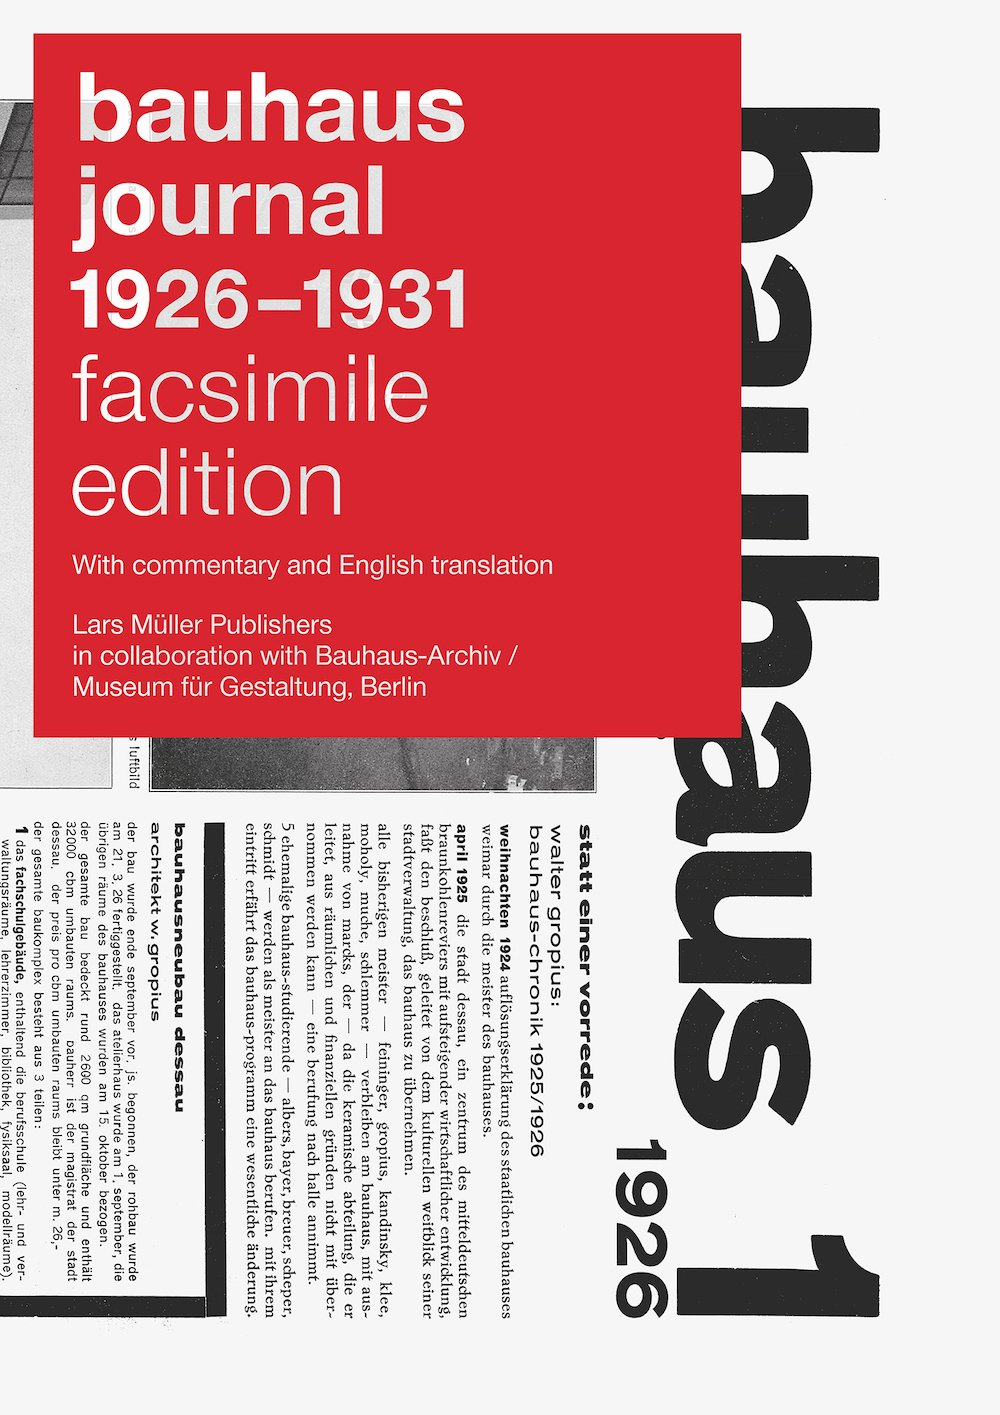 'Bauhaus Journals 1926 – 2931', edited and published Lars Müller Publishers in collaboration with Bauhaus-Archiv/Museum für Gestaltung © Lars Müller